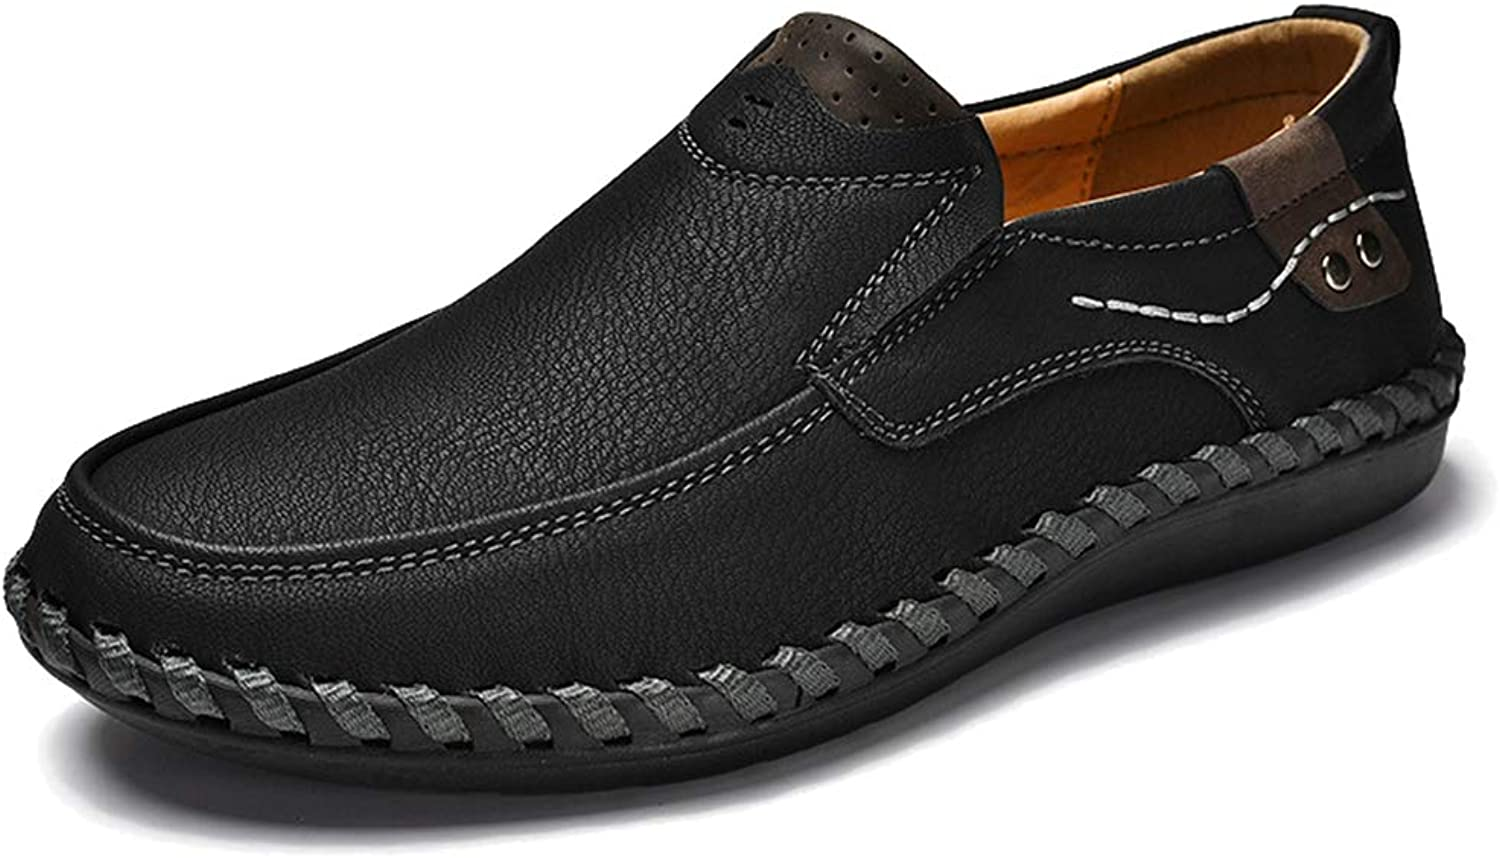 Femaroly Men's Casual Loafers shoes Formal Wear Handmade Business Comfortable Slip-on Leather Walking Dress shoes